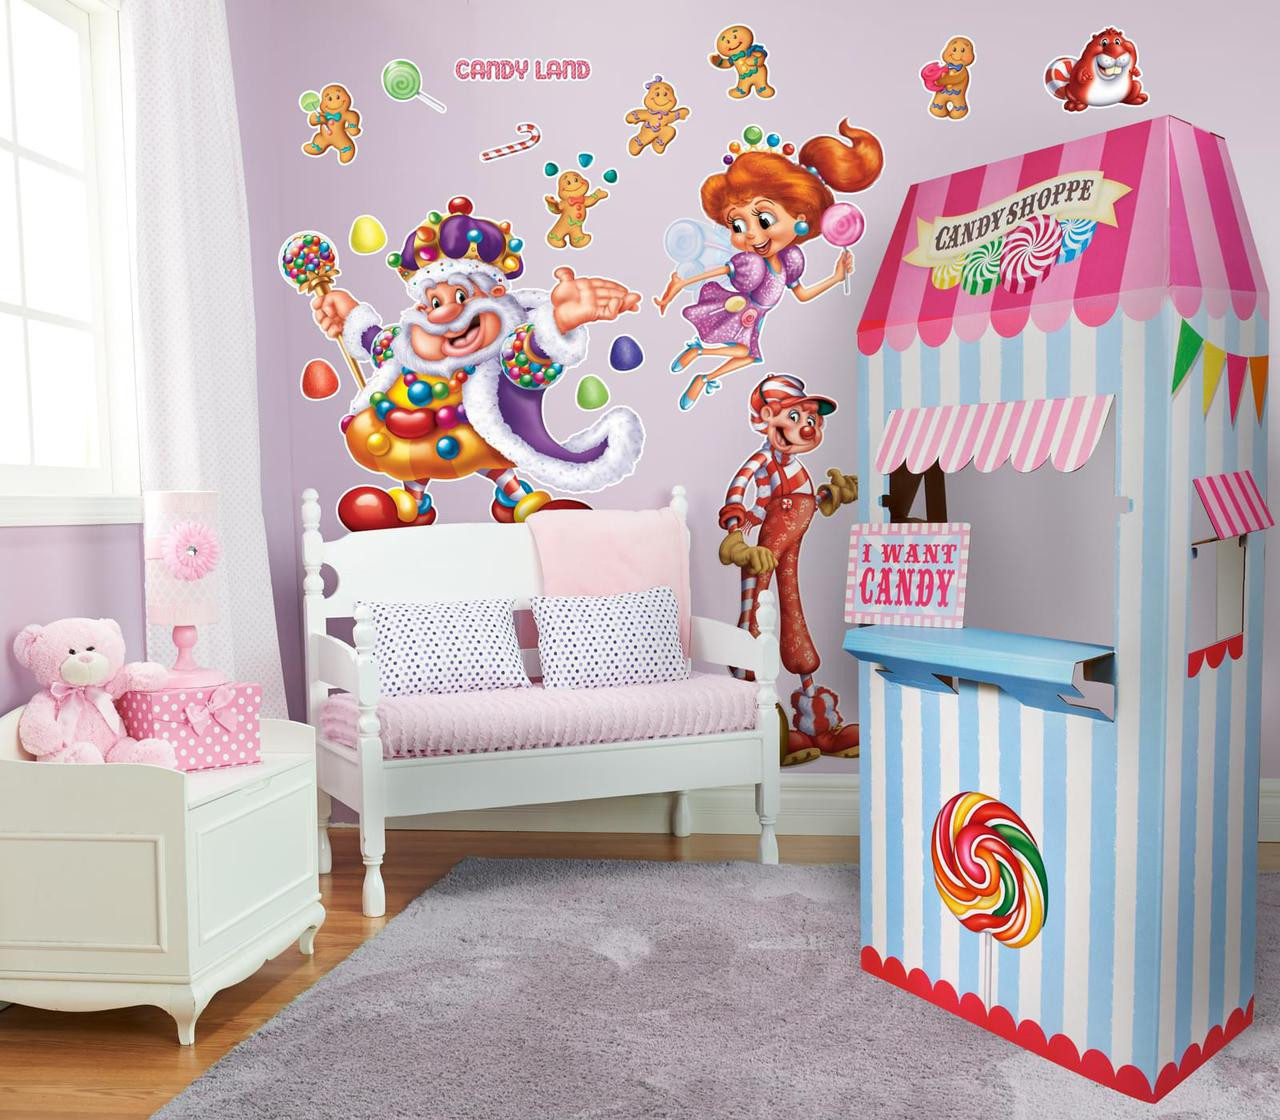 Candyland giant wall decal and standup kit thepartyworks for Candyland wall mural